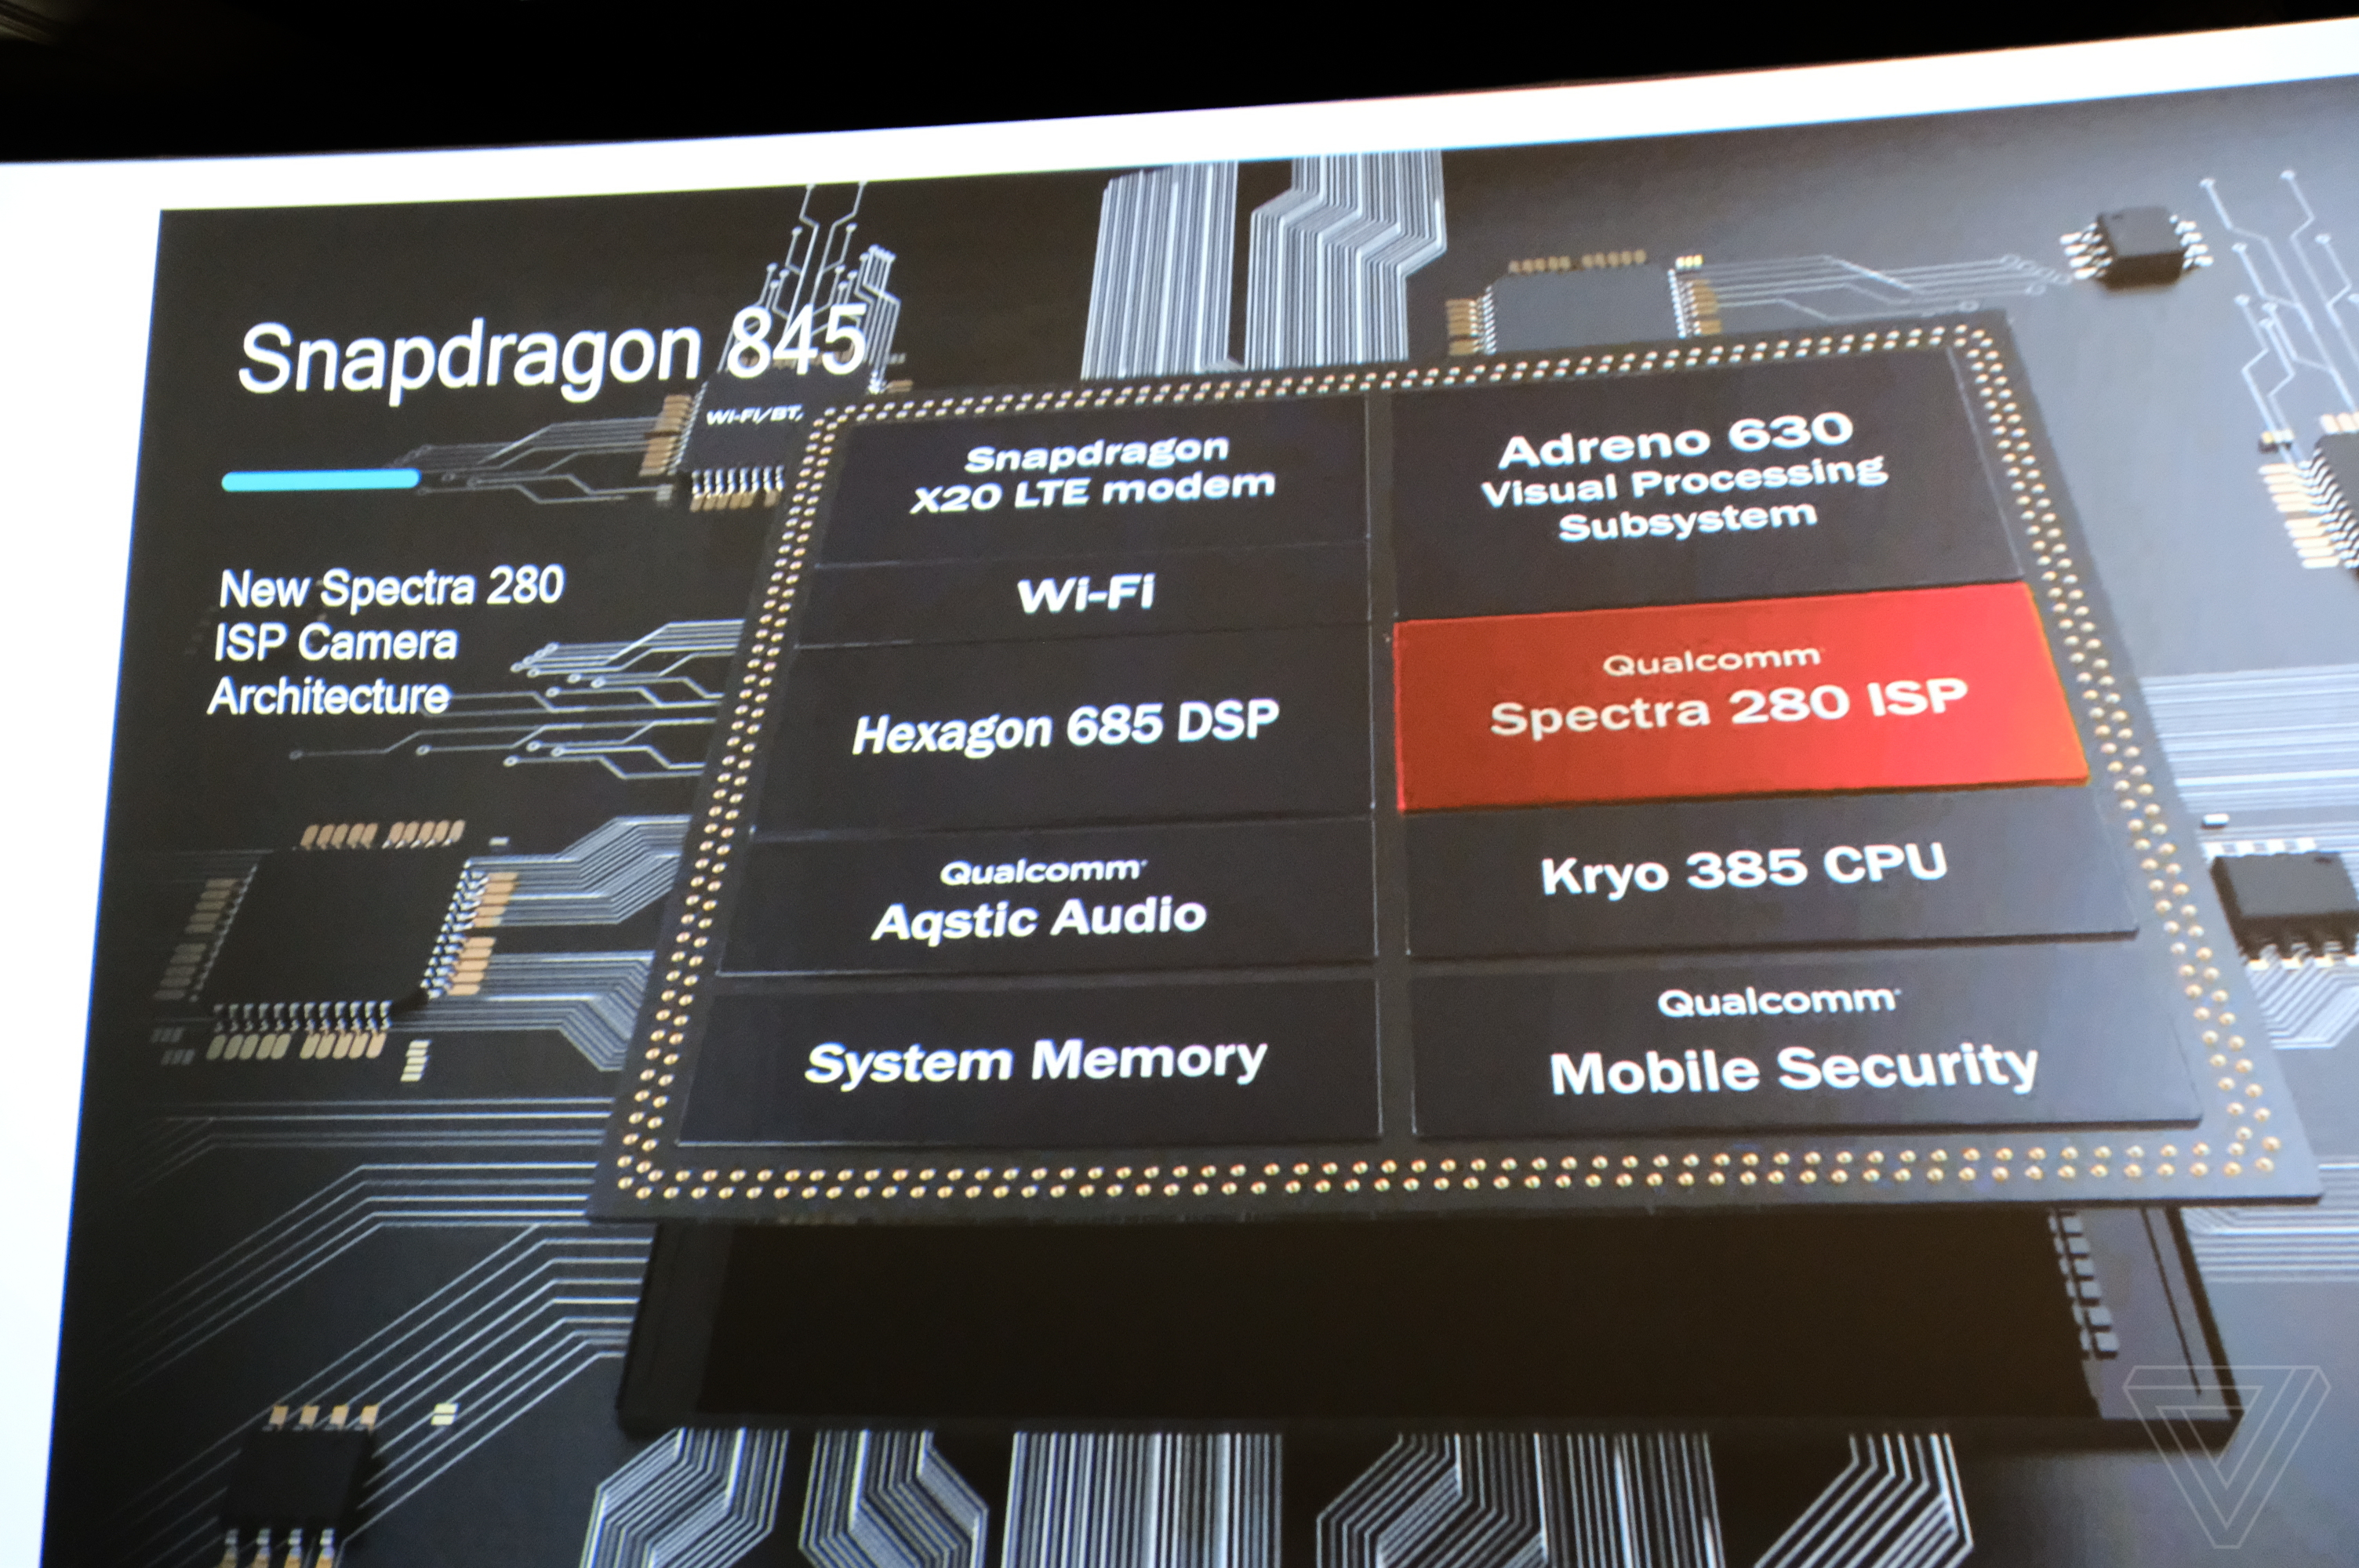 Qualcomm Snapdragon 845 platform